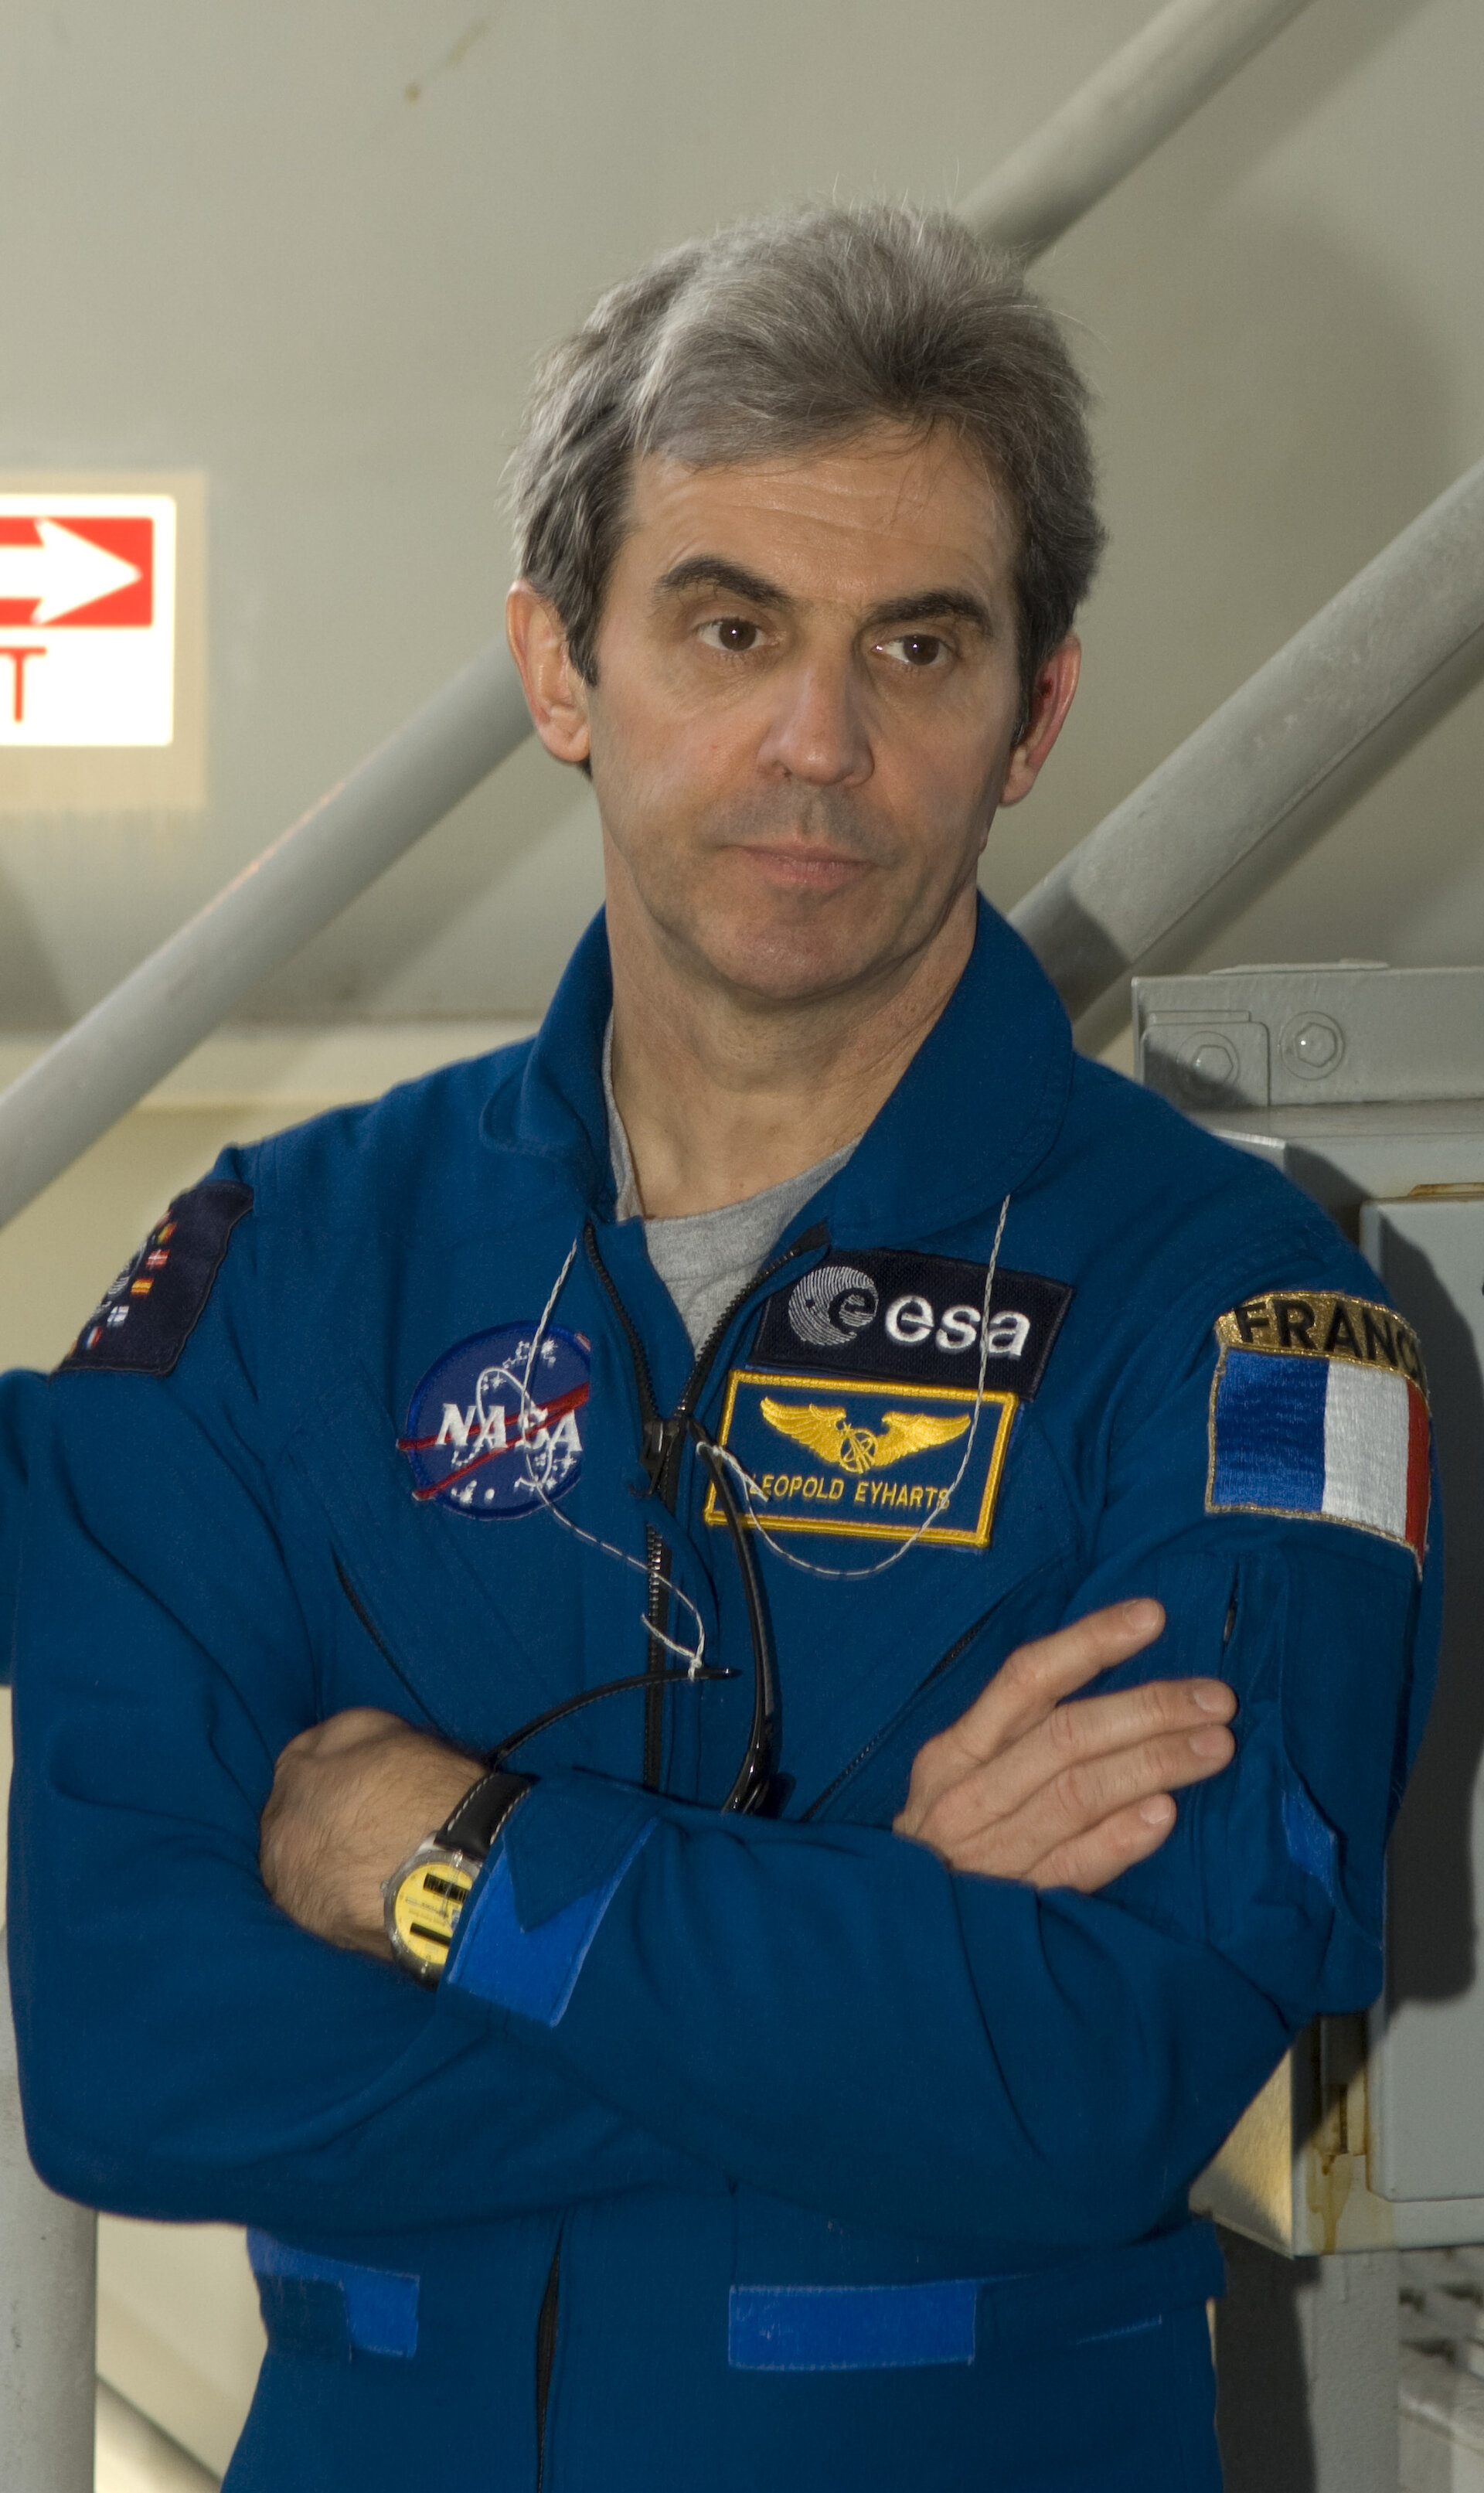 ESA astronaut Léopold Eyharts during final training ahead of the STS-122 mission to deliver the European Columbus laboratory